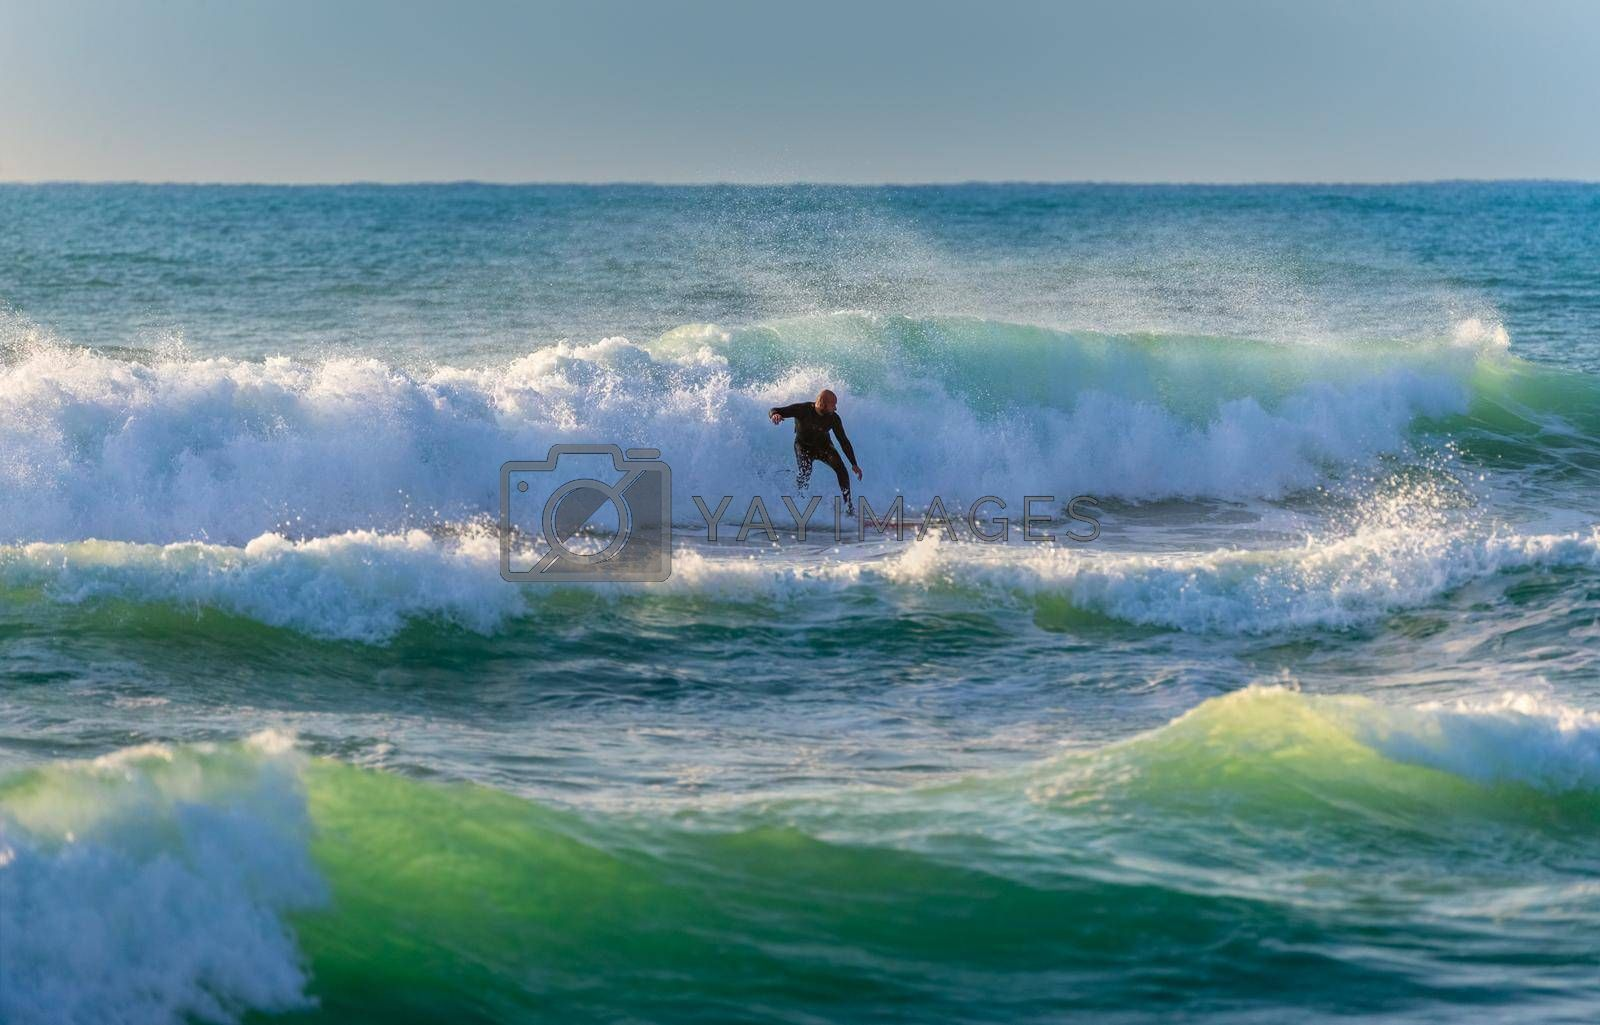 Surf. Picture of a Man Riding a Surfboard on the Crest of a Wave. Summertime Activity. Extreme Water Sport. Enjoying Summer Vacation on the Sea.